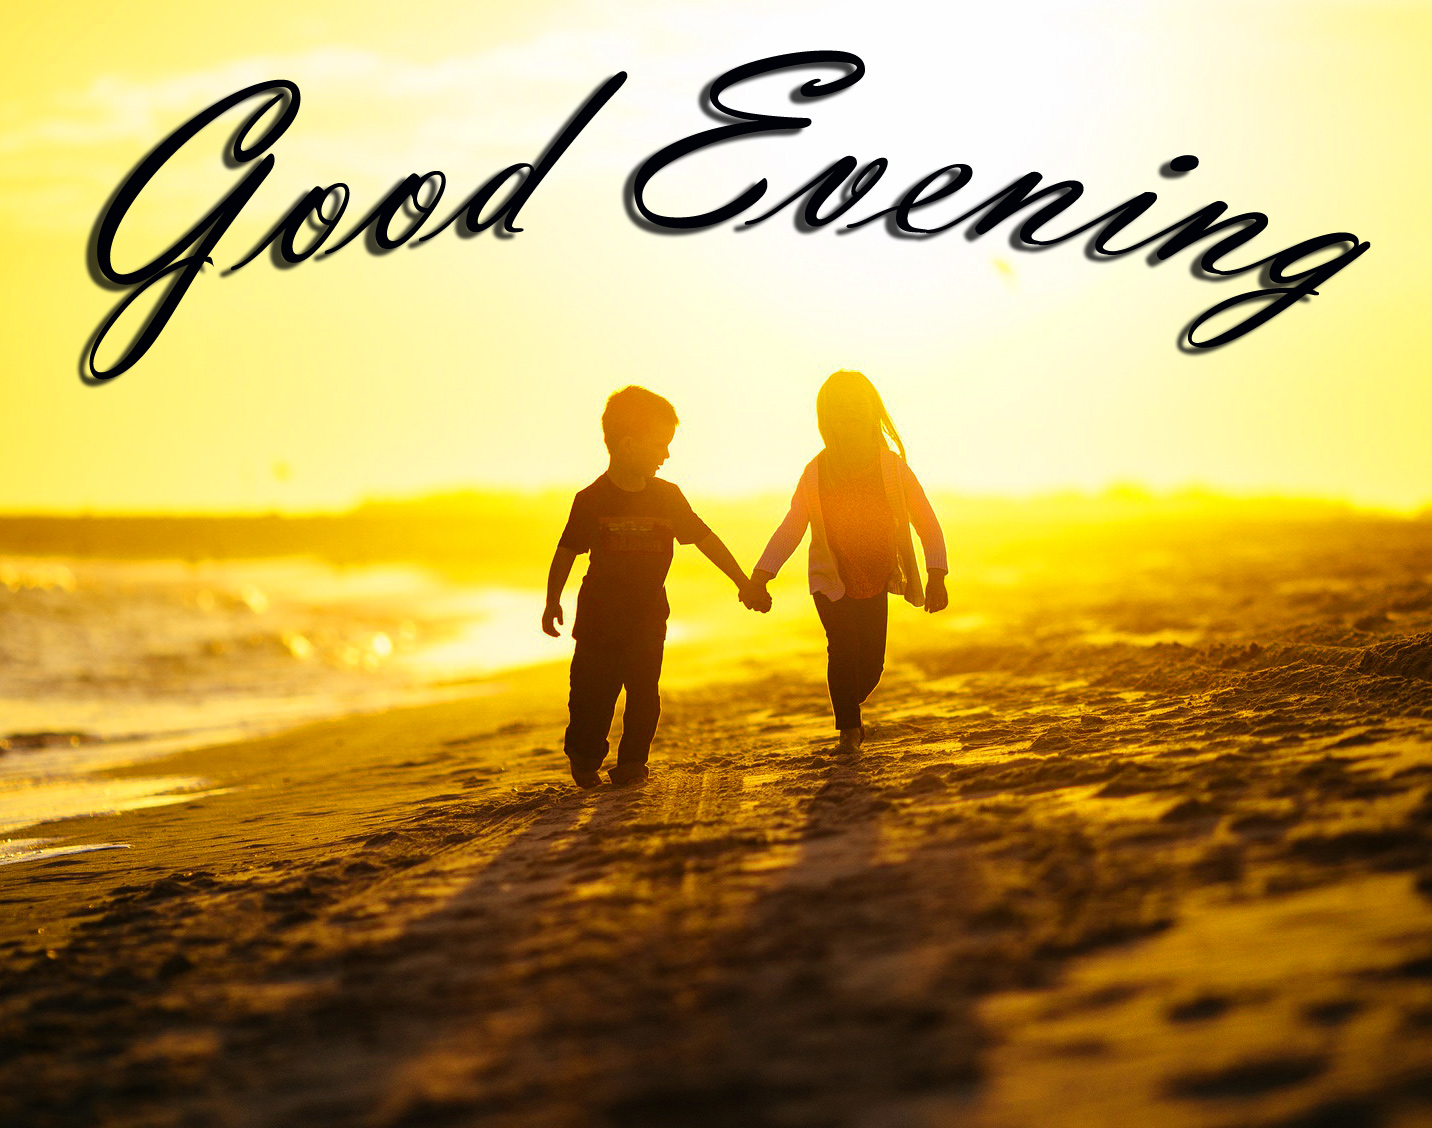 Good Evening Images Pics Wallpaper Pictures Photo HD Download